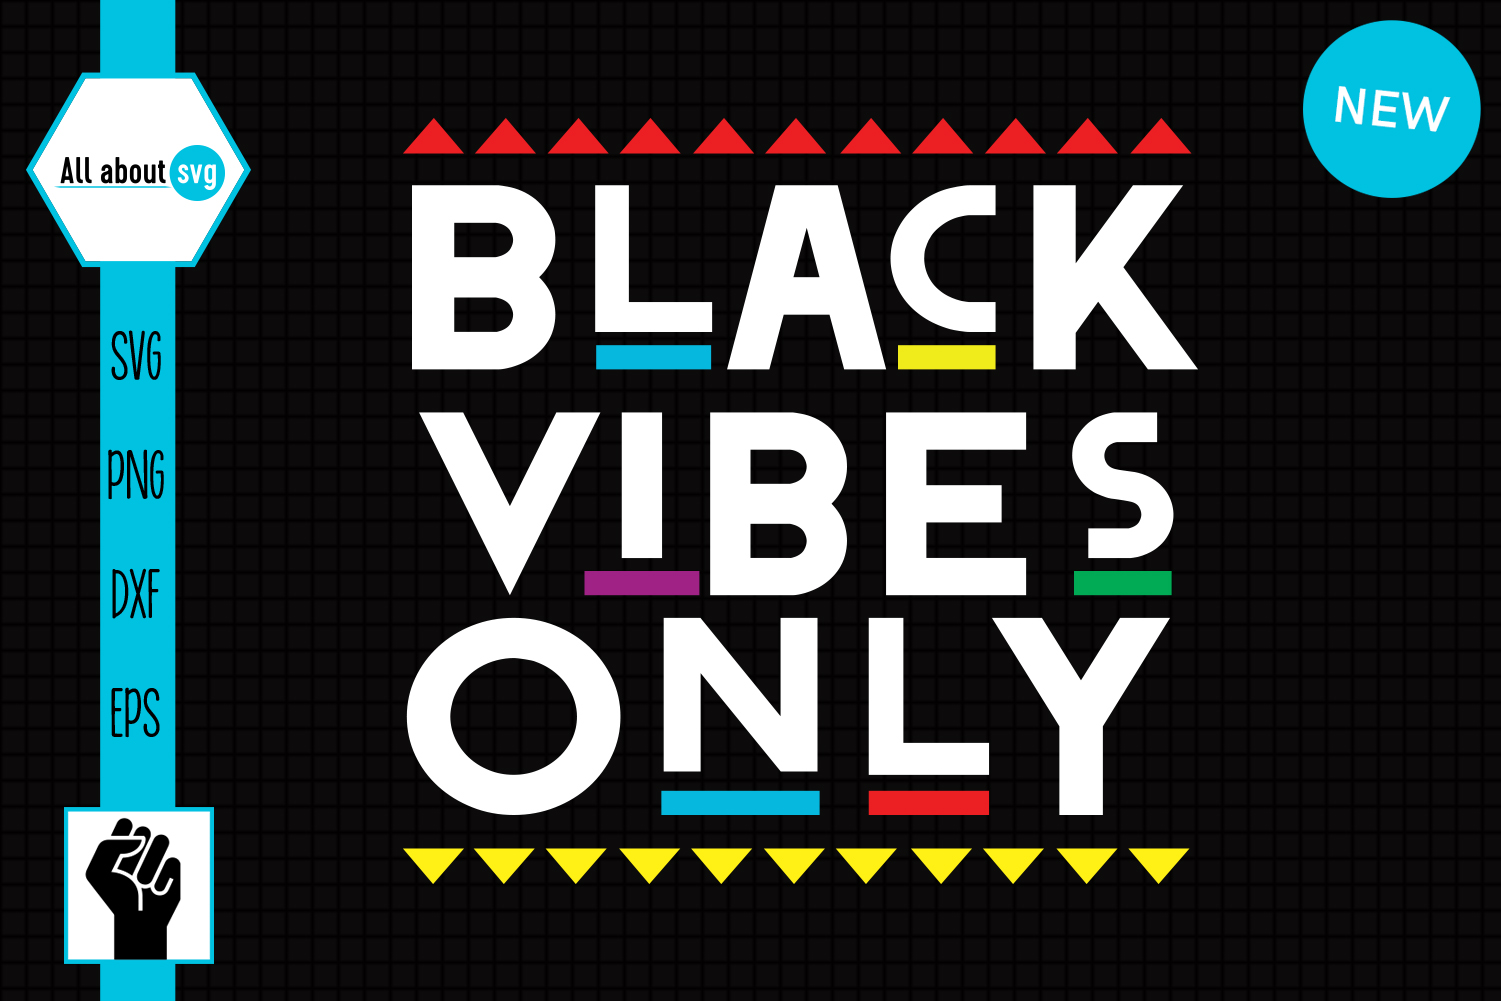 Download Free Black Vibes Only Svg Graphic By All About Svg Creative Fabrica for Cricut Explore, Silhouette and other cutting machines.